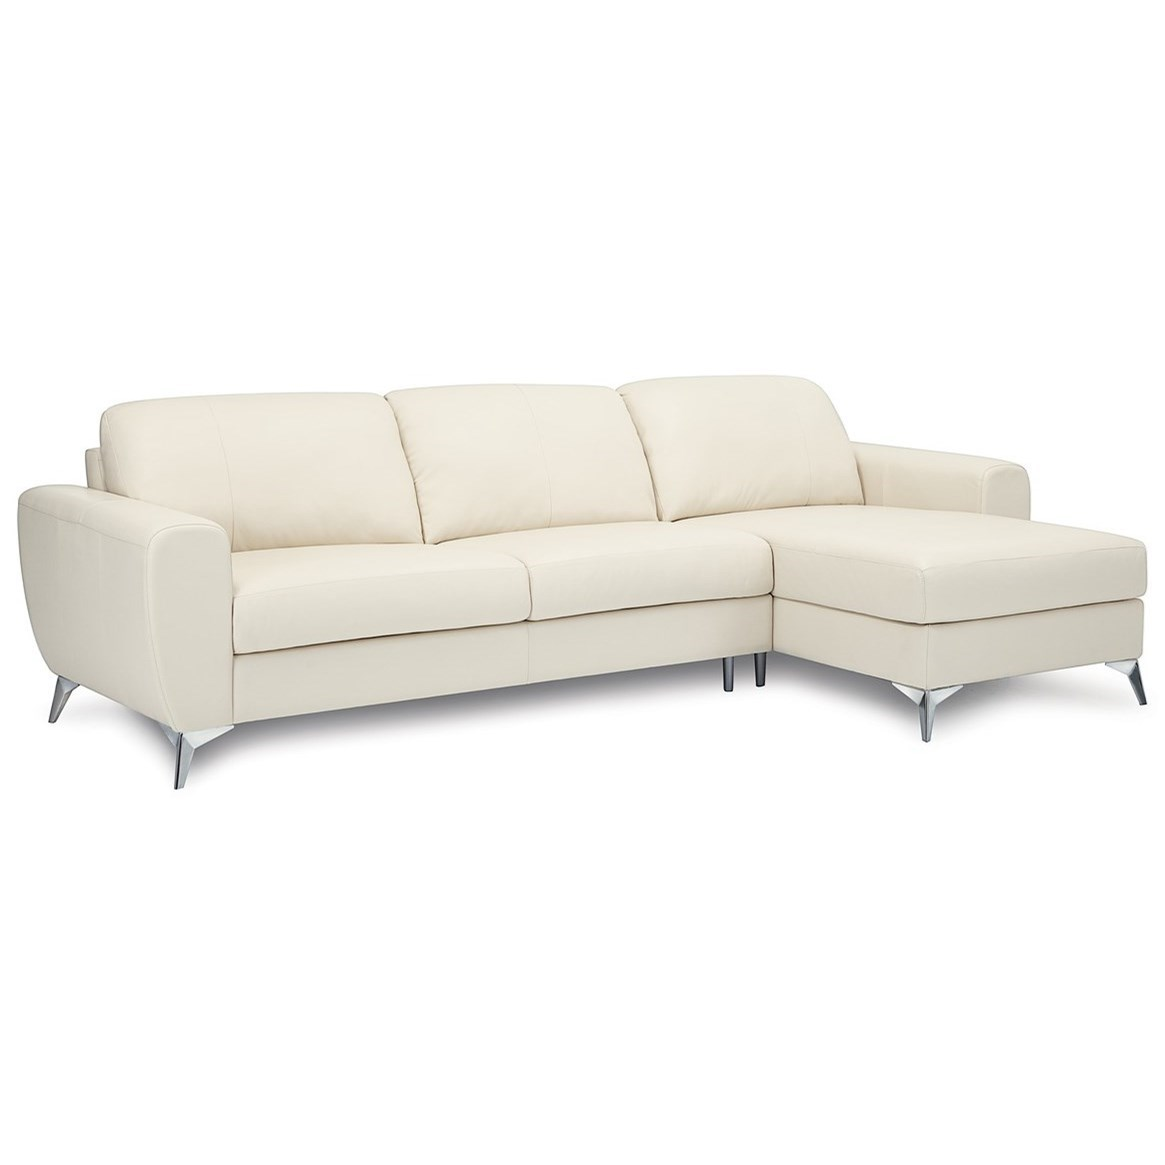 Palliser Vivy Three Seat Sectional Sofa With Modern Appeal